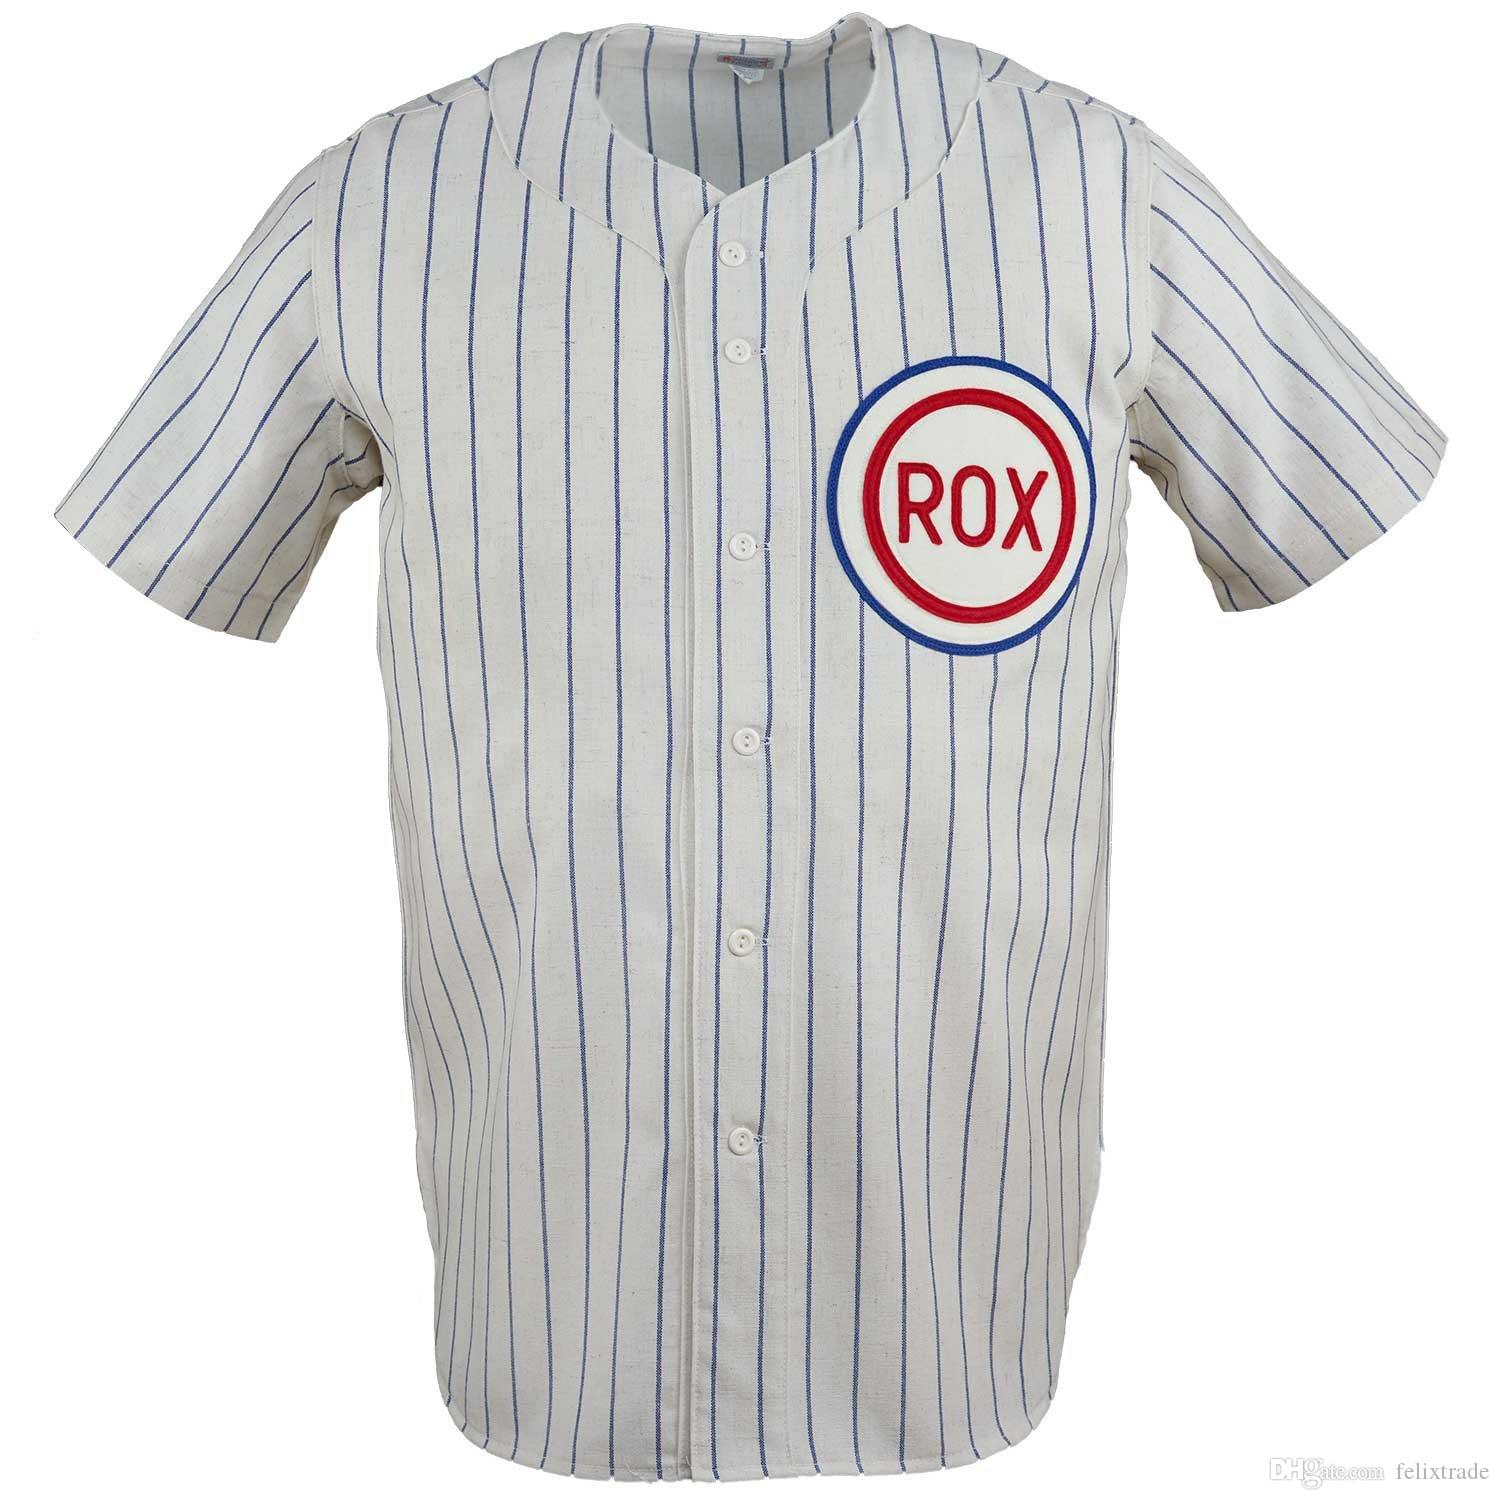 6c3e69ffb St. Cloud Rox 1961 Home Jersey Double Stiched Name & Number & Logos ...